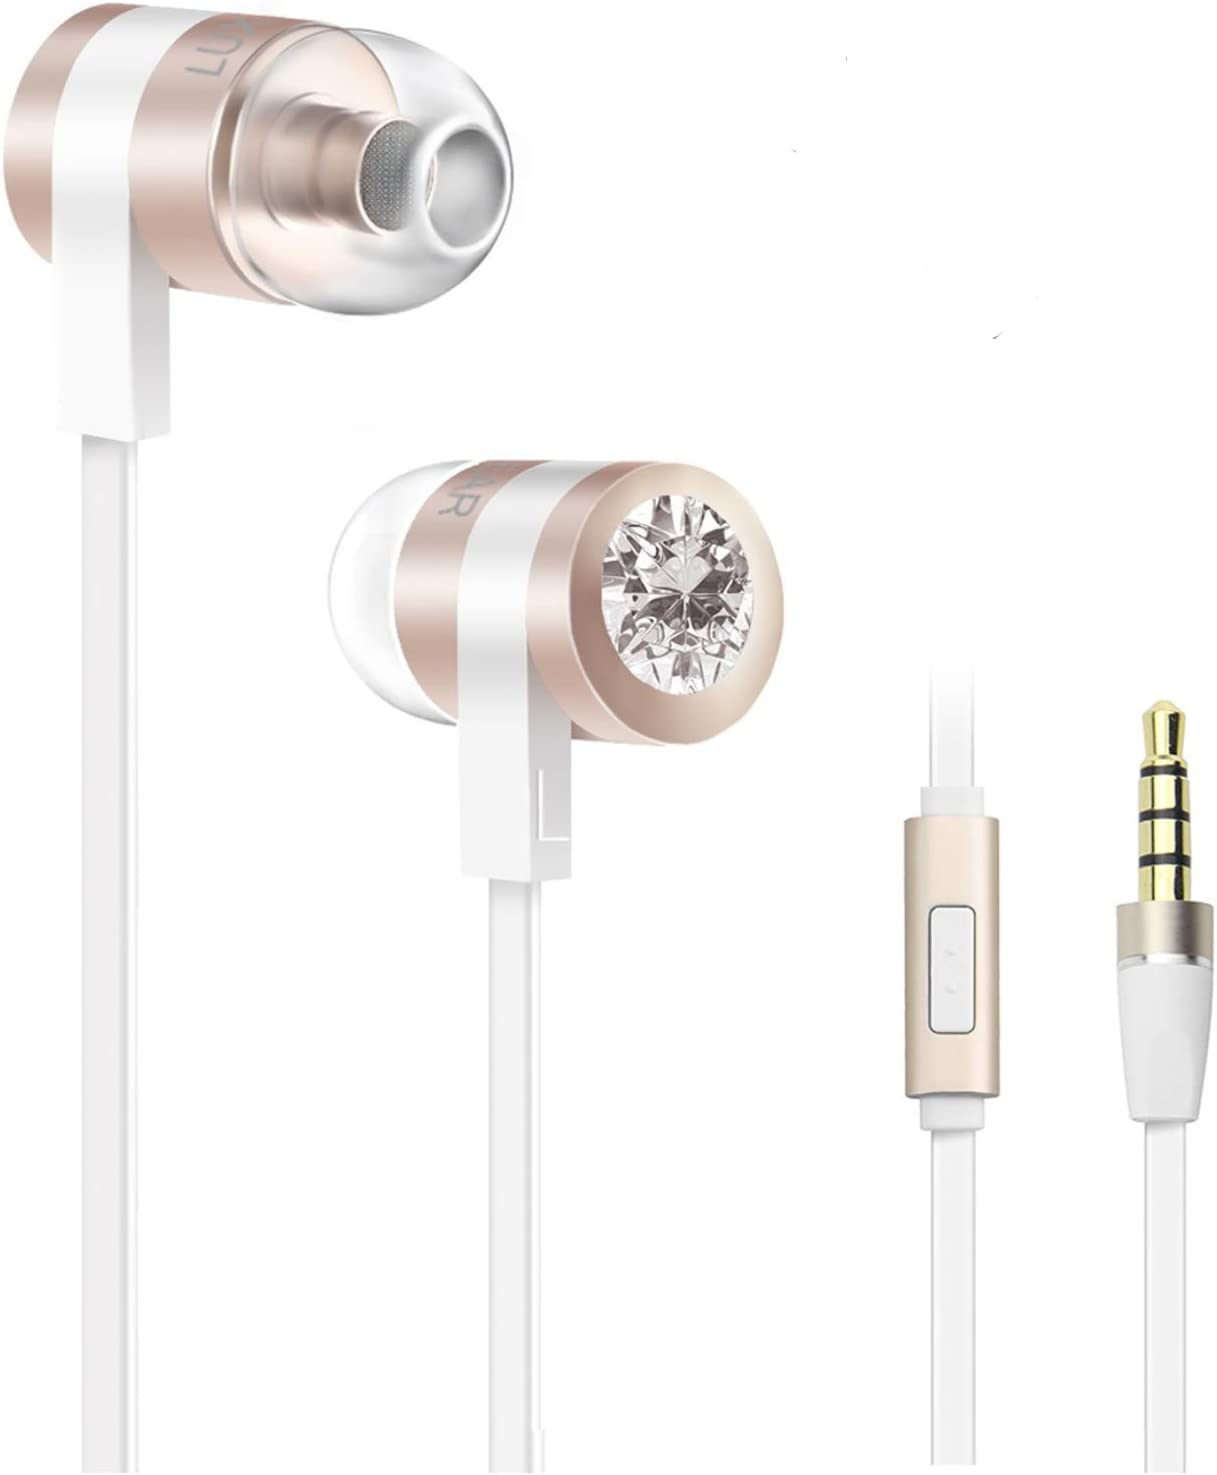 Earbuds with Microphone, LUXEAR in-Ear Stereo Headset Earphones with Remote Control Clear Sound, Noise-isolating, Ergonomic Comfort-fit, for All Android Smartphone(Gold)